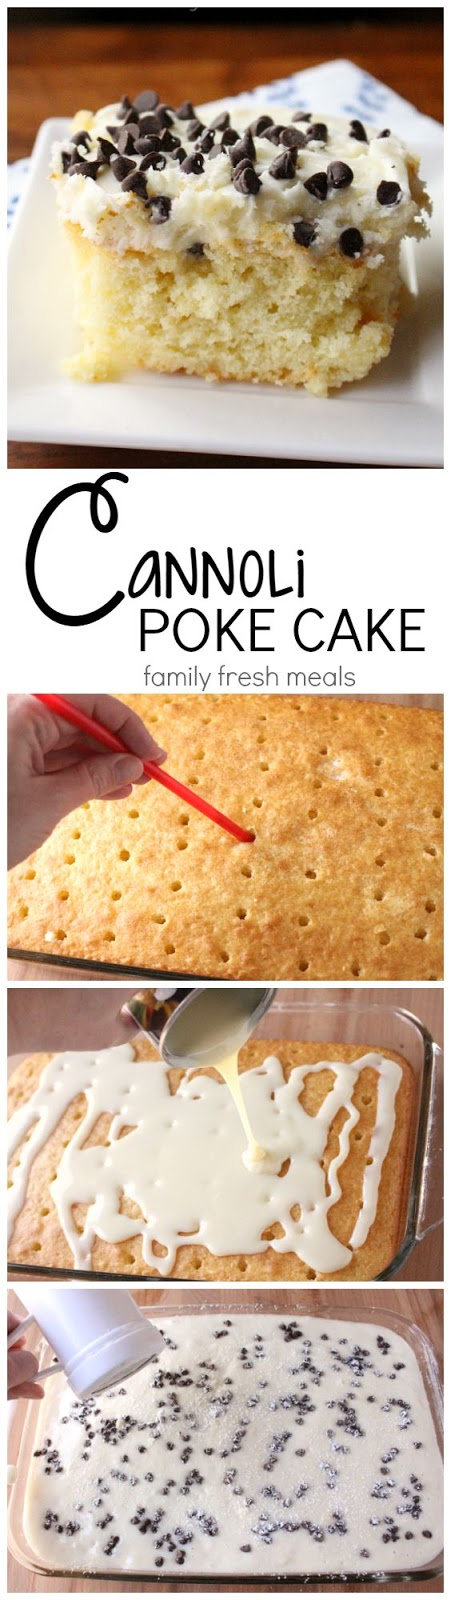 The Poke Cake rises to new heights.